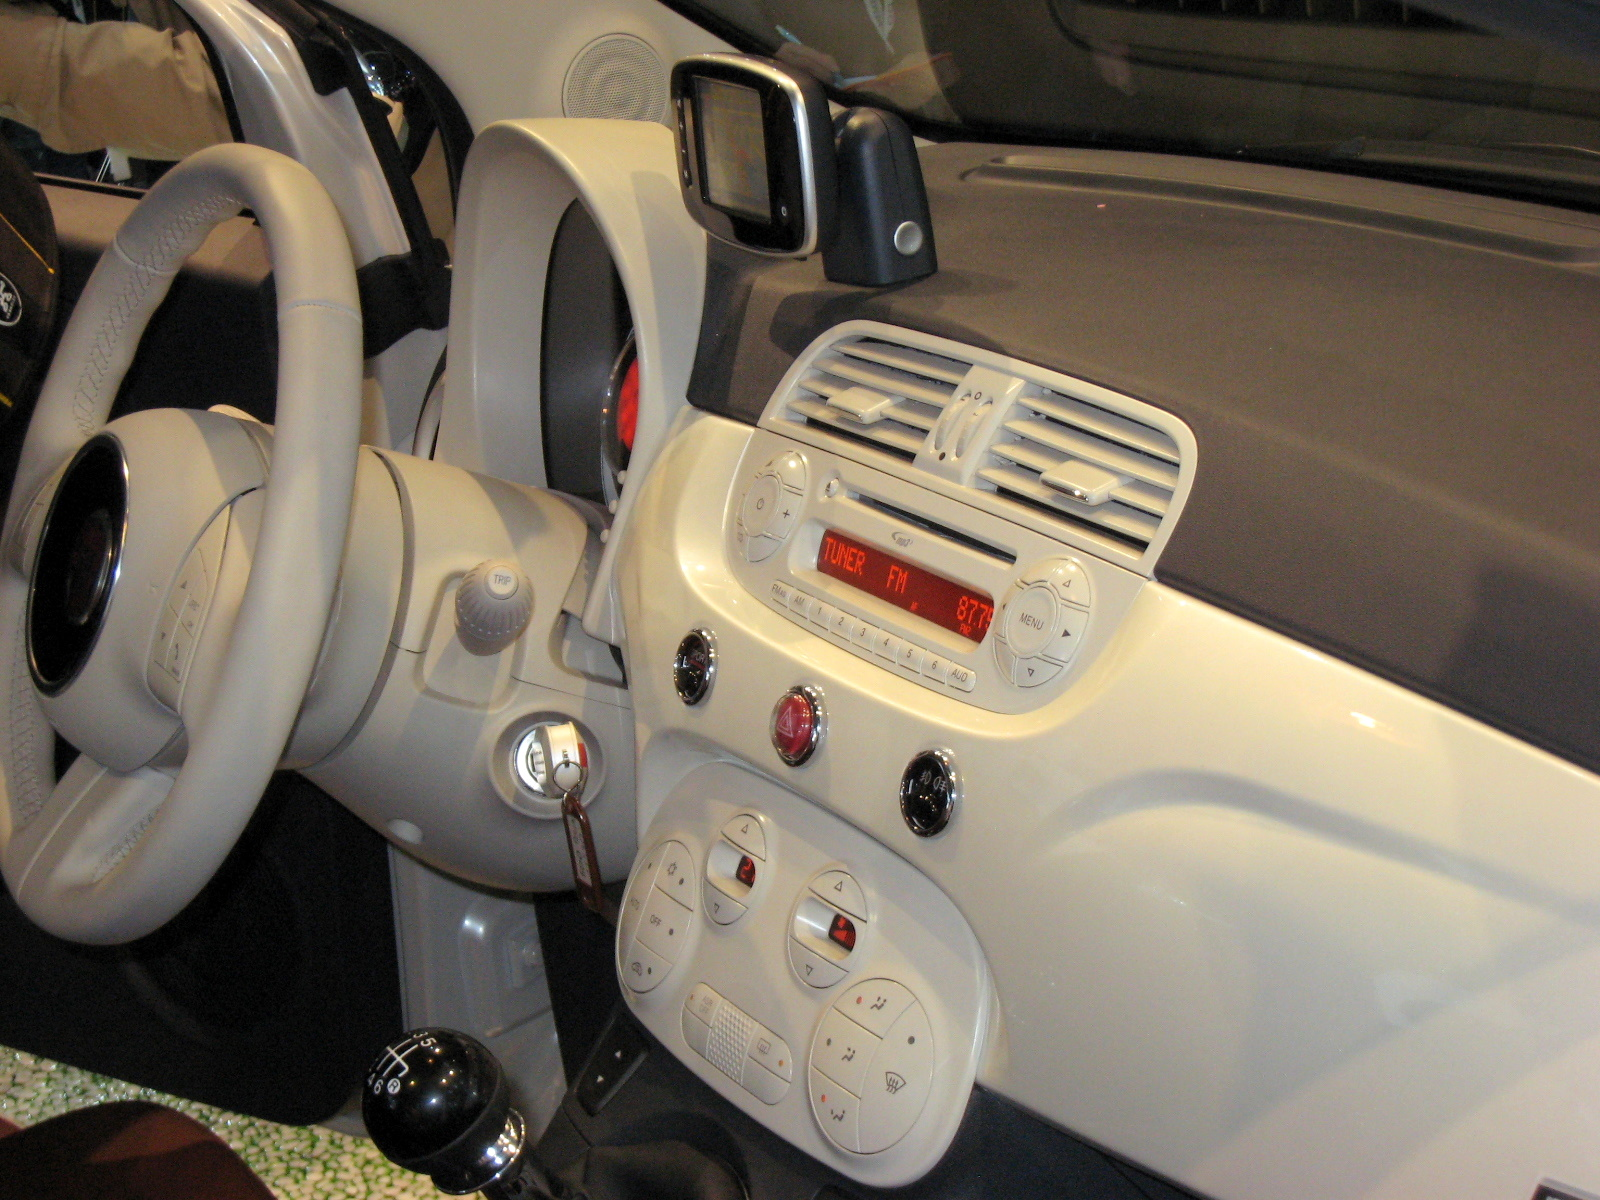 The Fiat 500 dash design is as clean as the iPod's.